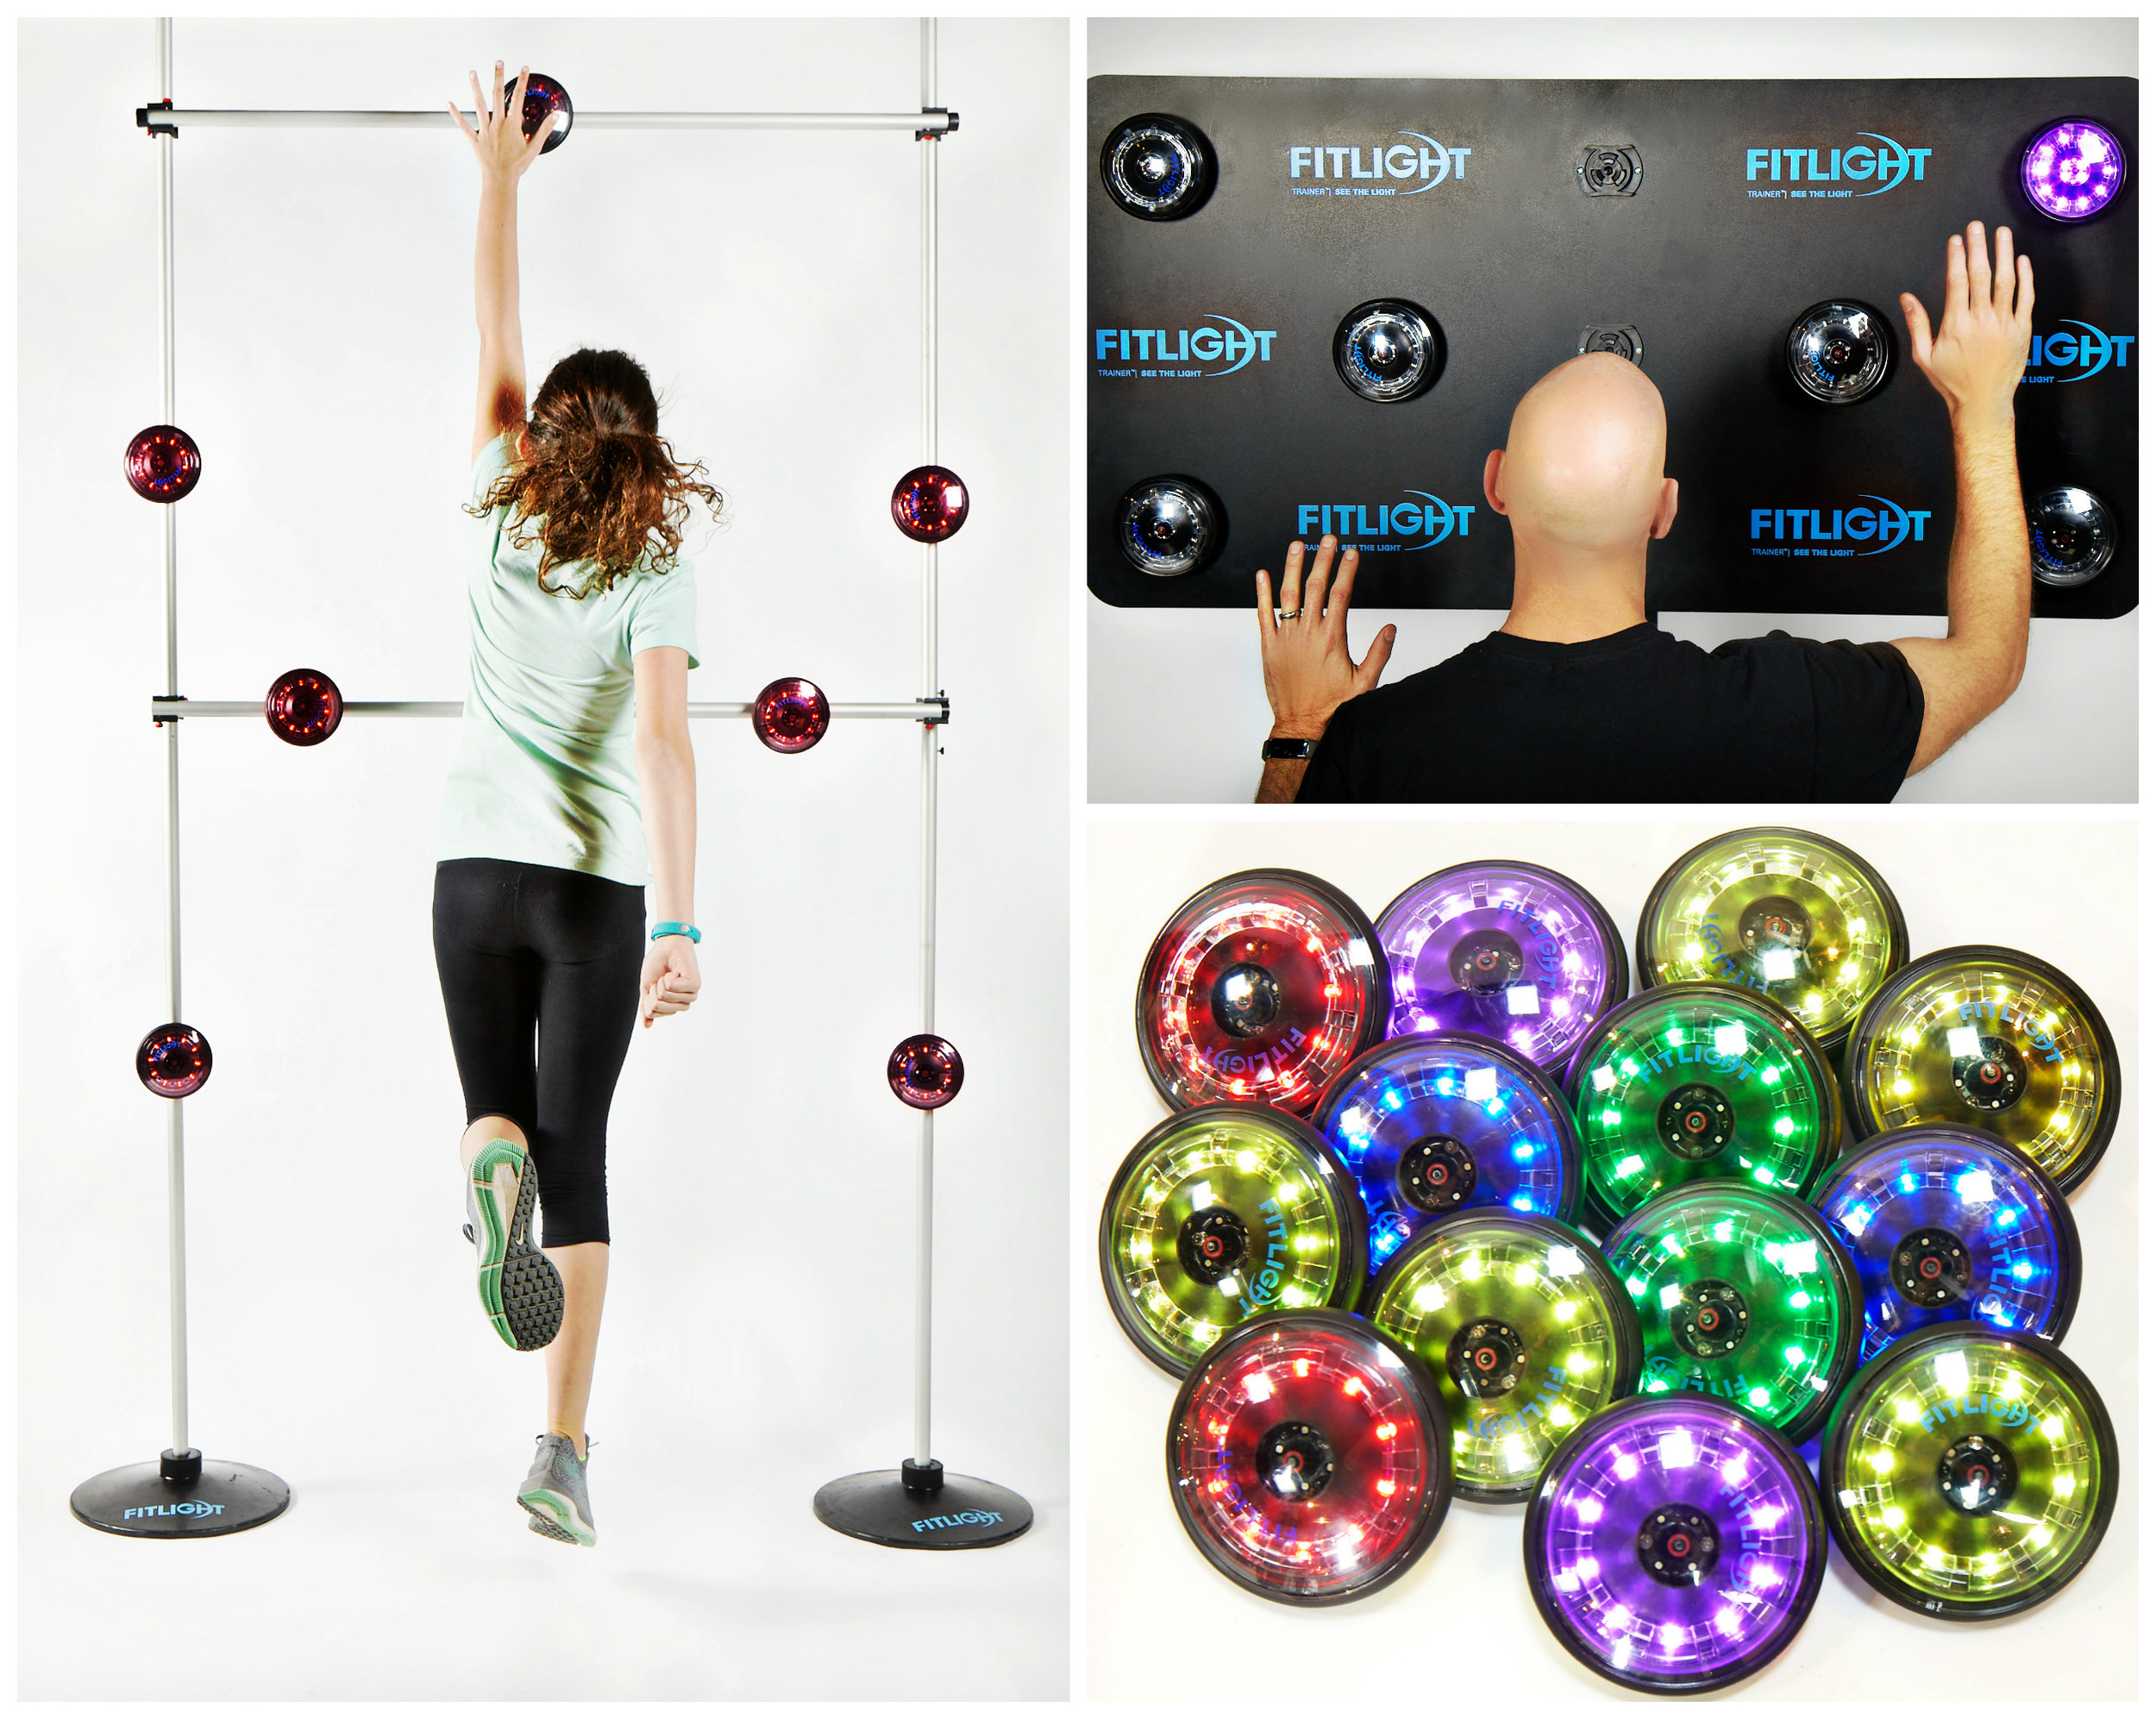 Fitlights can be arranged in virtually any configuration